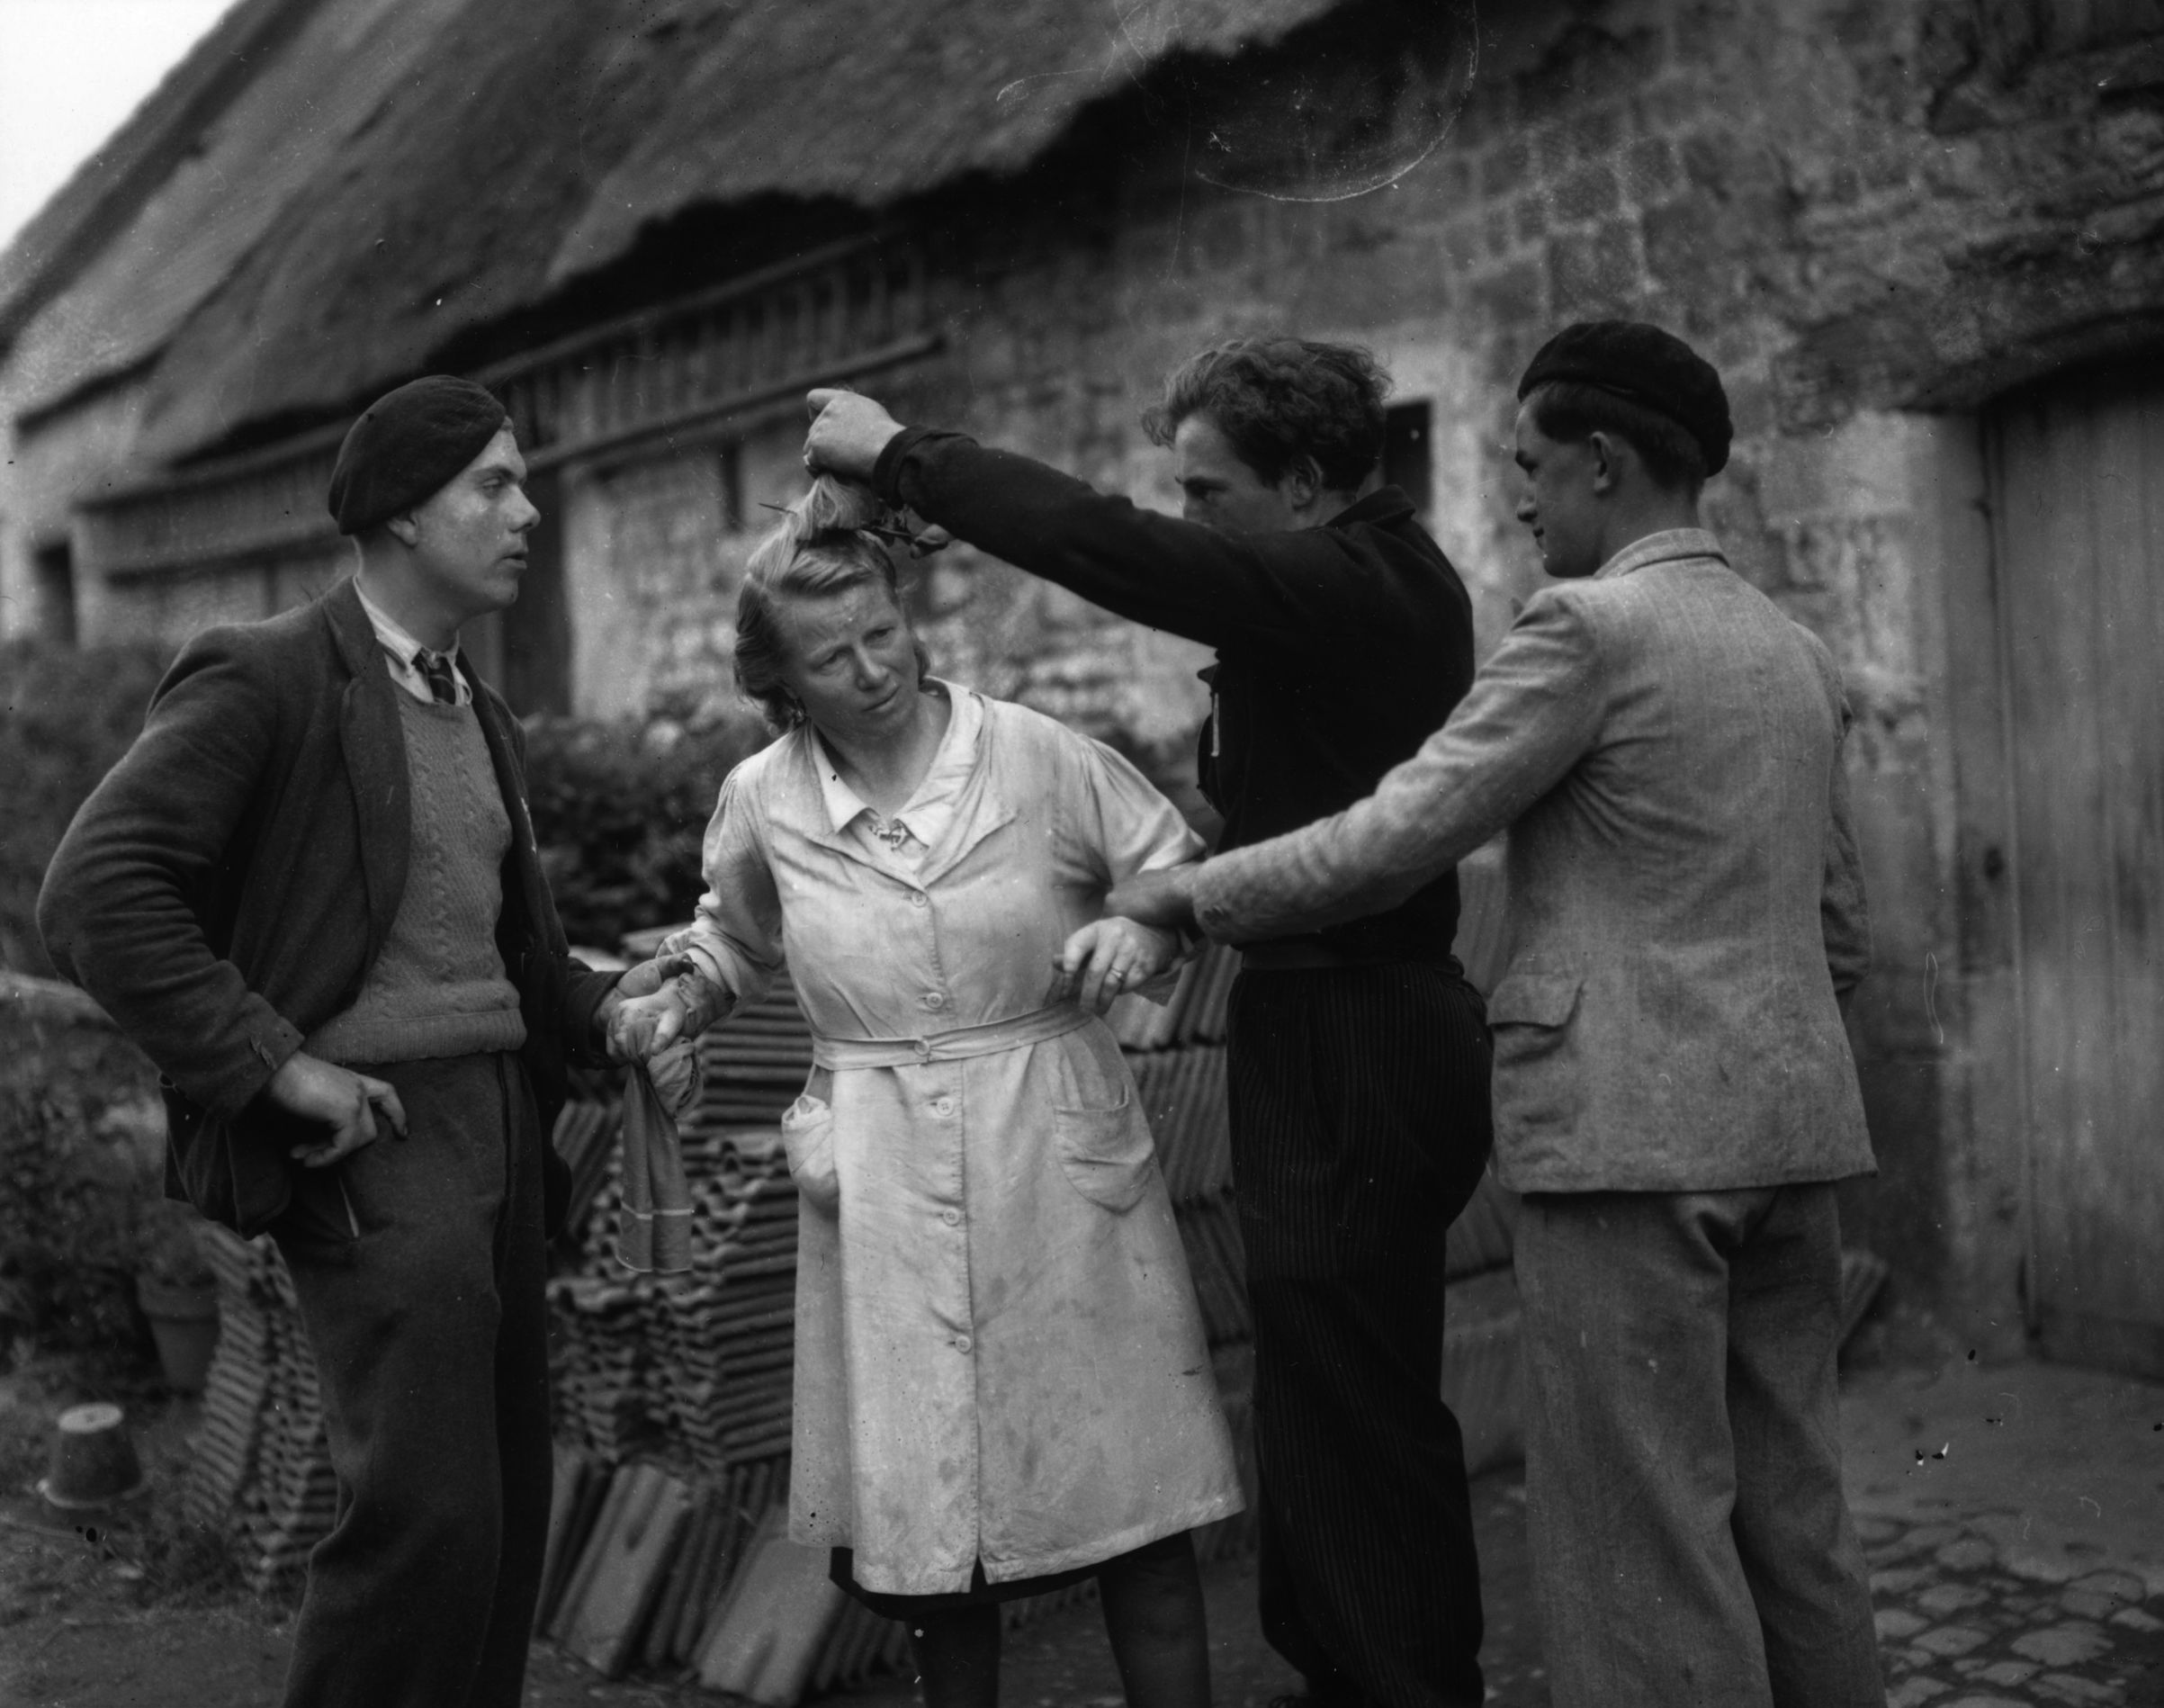 circa 1945: Two French men restrain a woman while another crops her hair after she has been accused of collaborating with the Germans during the occupation.